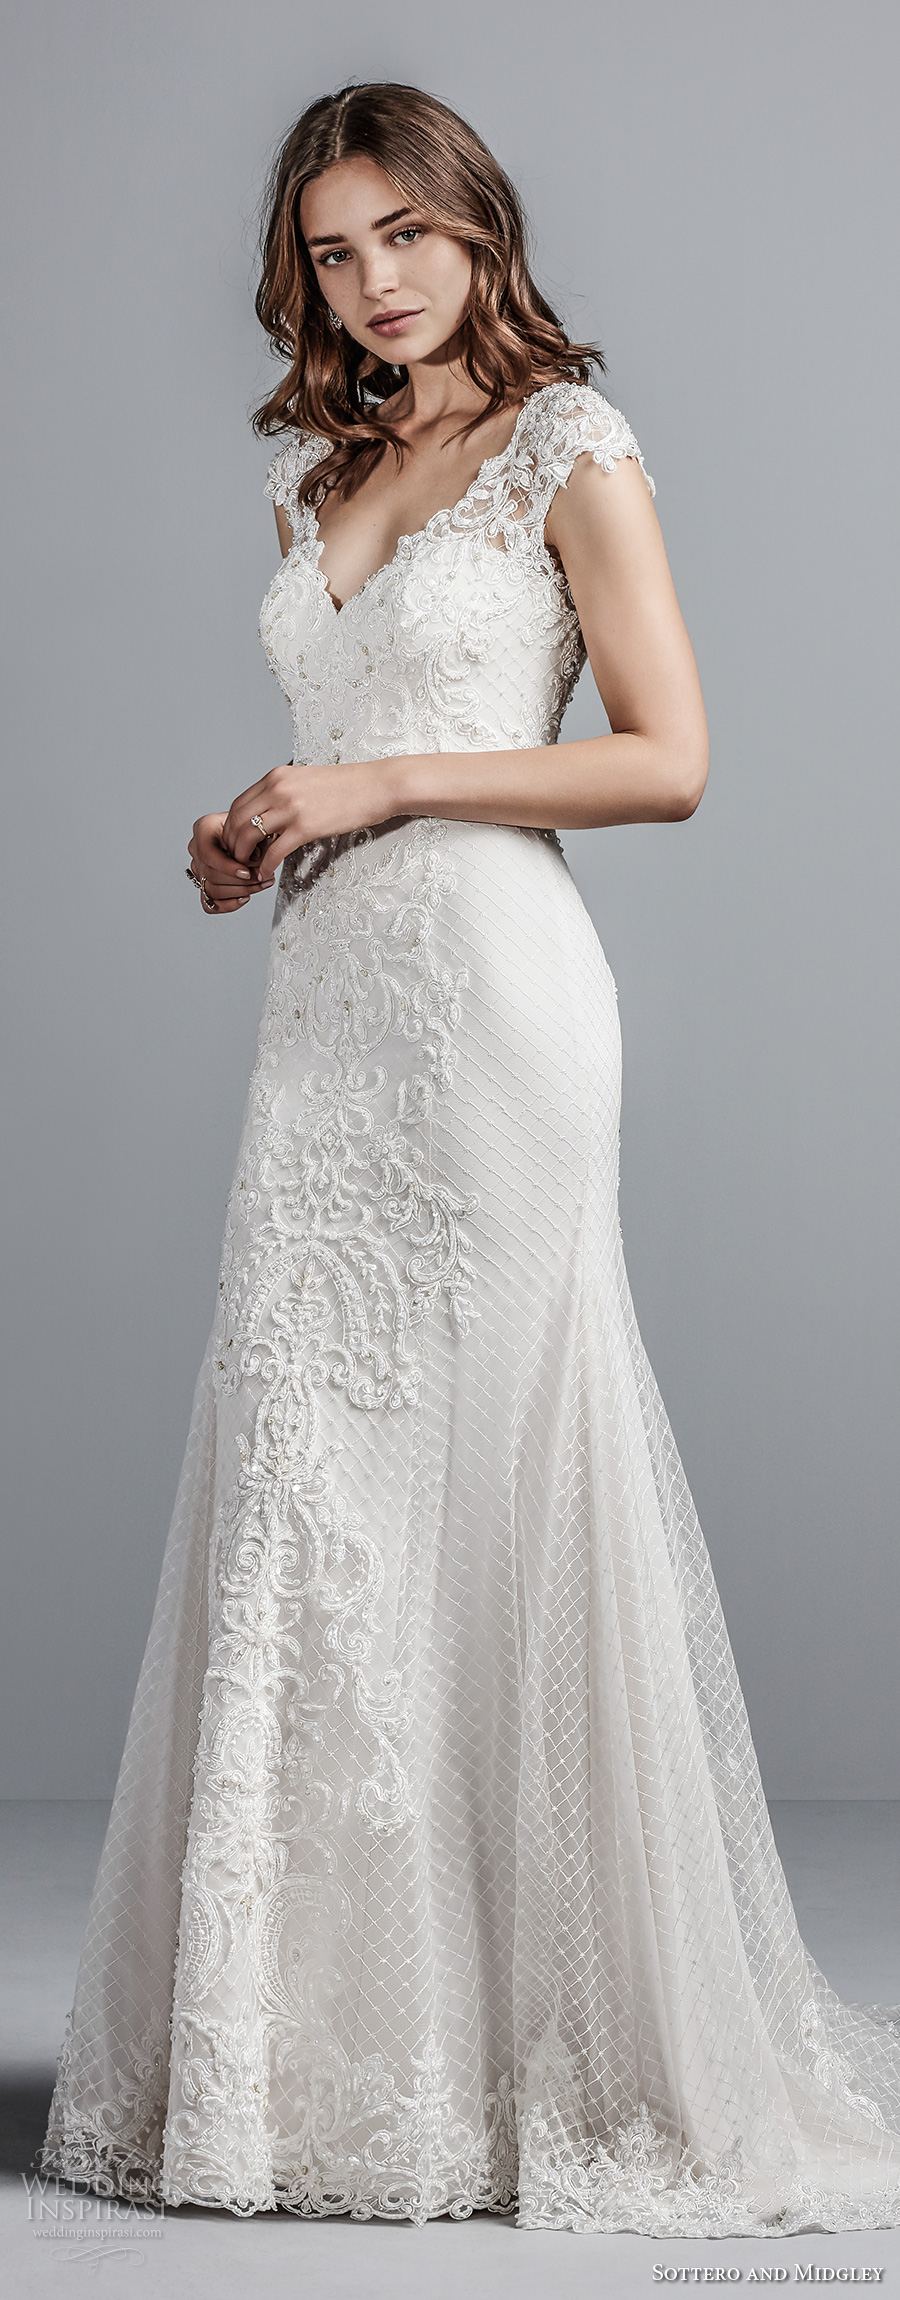 sottero midgley fall 2017 cap sleeves sweetheart neckline heavily embellished bodice elegant modified a line wedding dress illusion lace back short train (989) mv